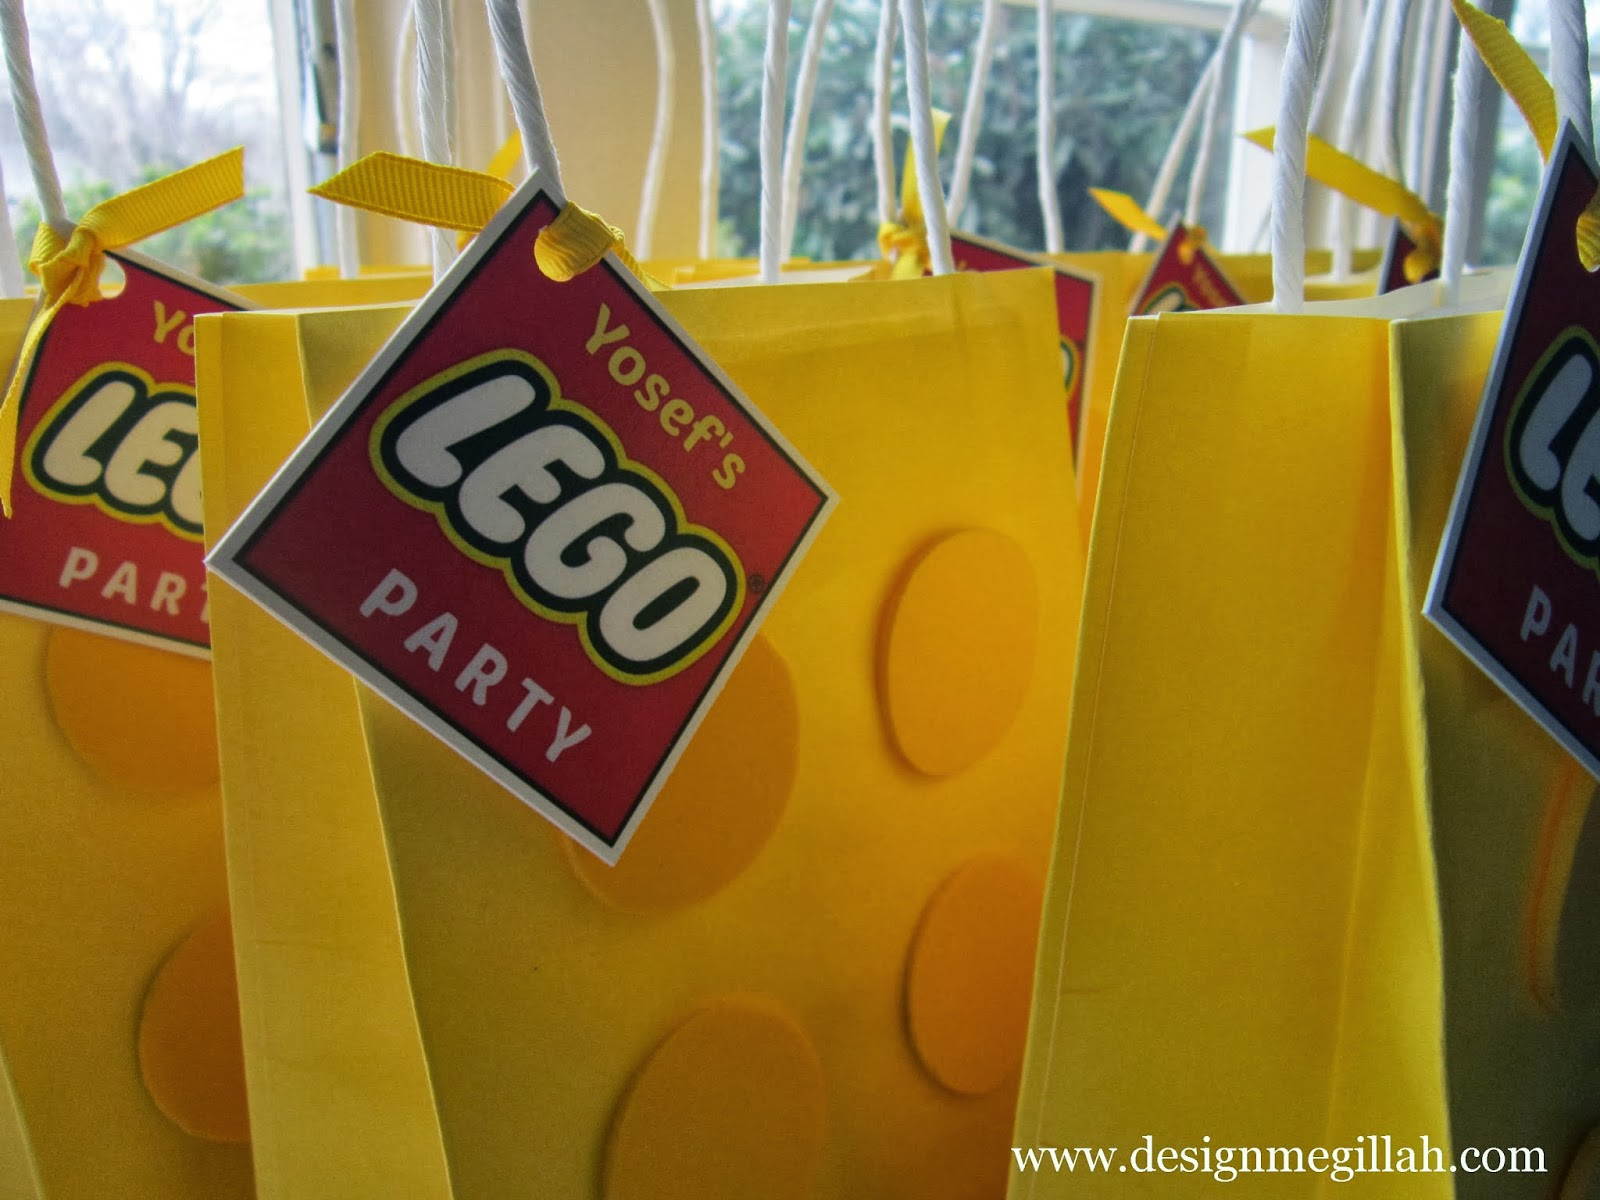 Design Megillah Treat Bags For A Lego Birthday